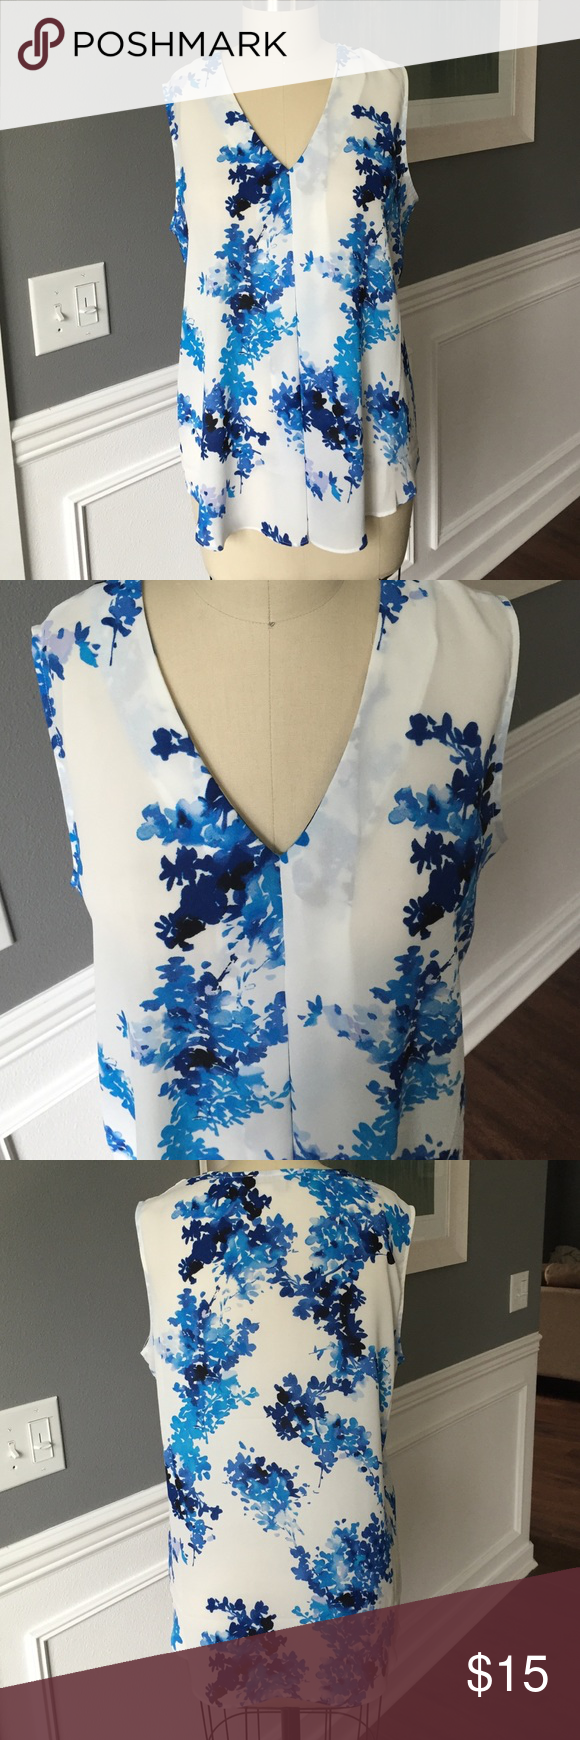 Rose & Olive Floral Sleeveless blouse Polyester sleeveless blouse. Pleated down the front. Beautiful floral blue designs. Like new! Rose & Olive Tops Tank Tops